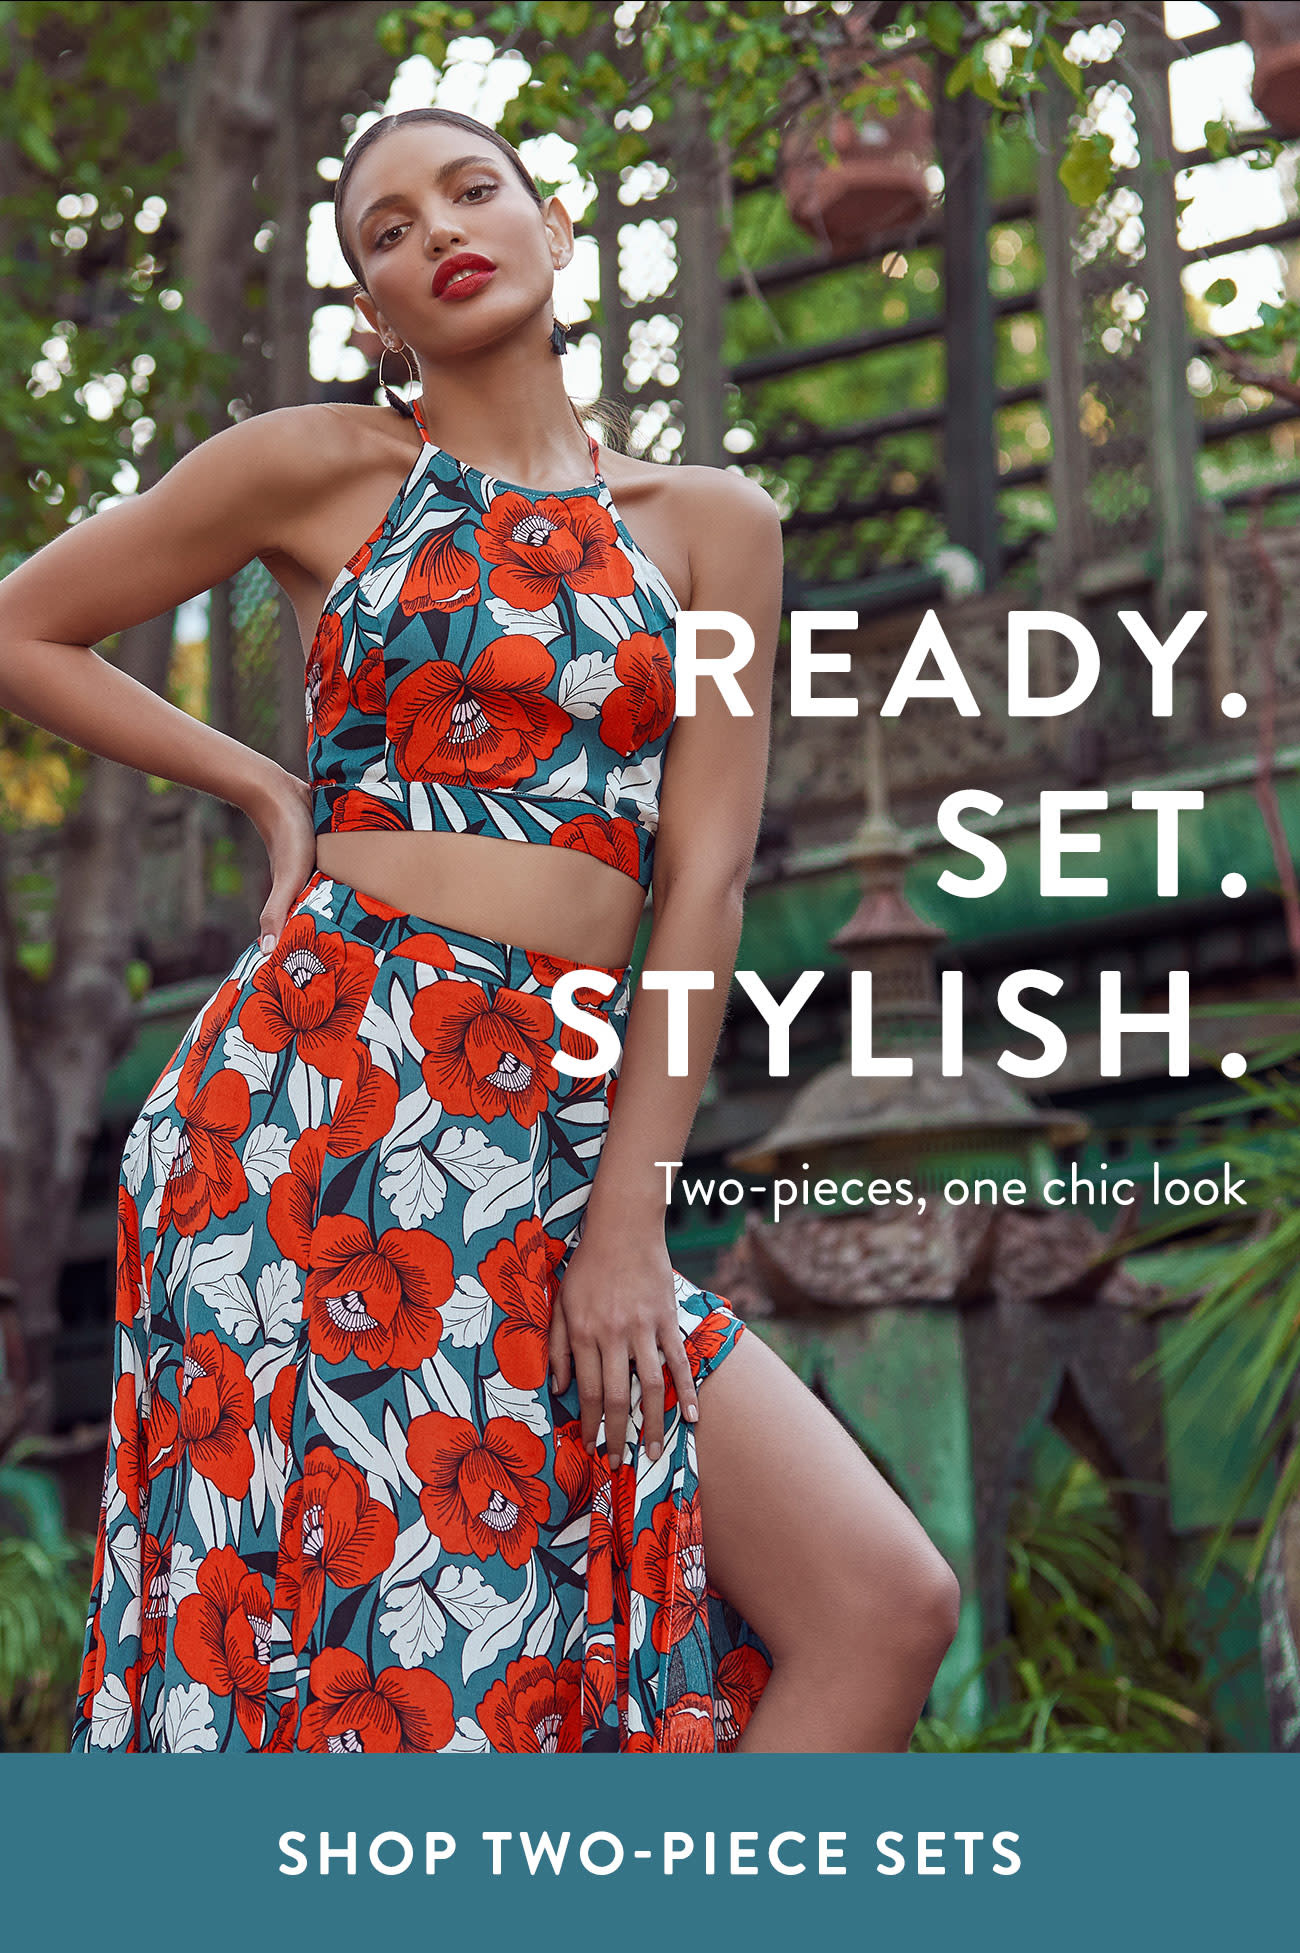 Ready Set Stylish - Shop Two-Piece Sets